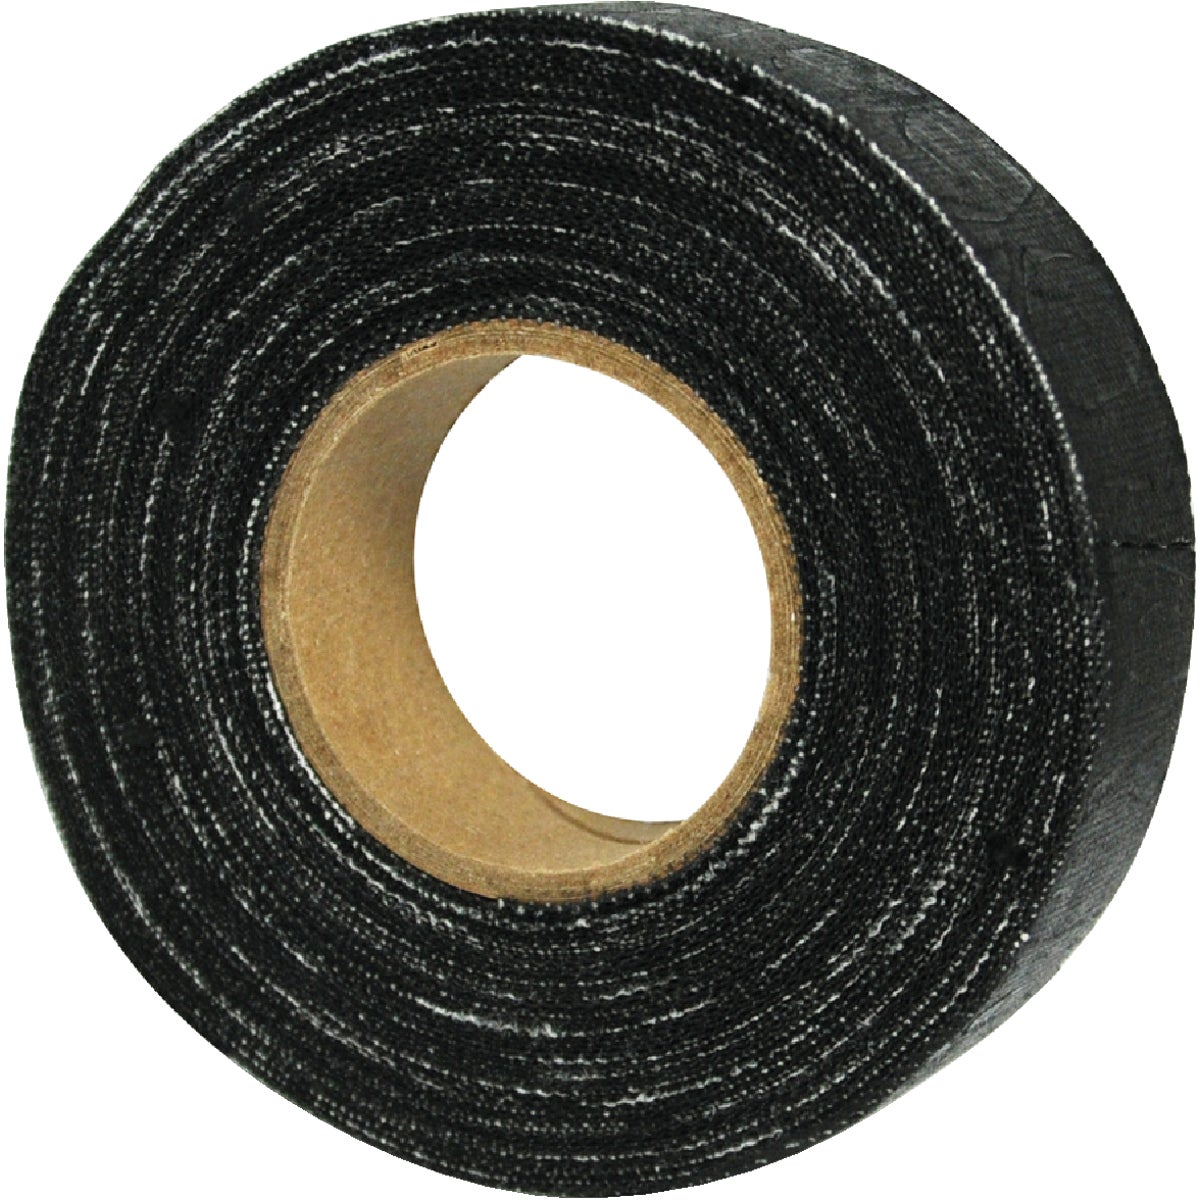 "3/4""X60' FRICTION TAPE - GTF-600 by G B Electrical Inc"